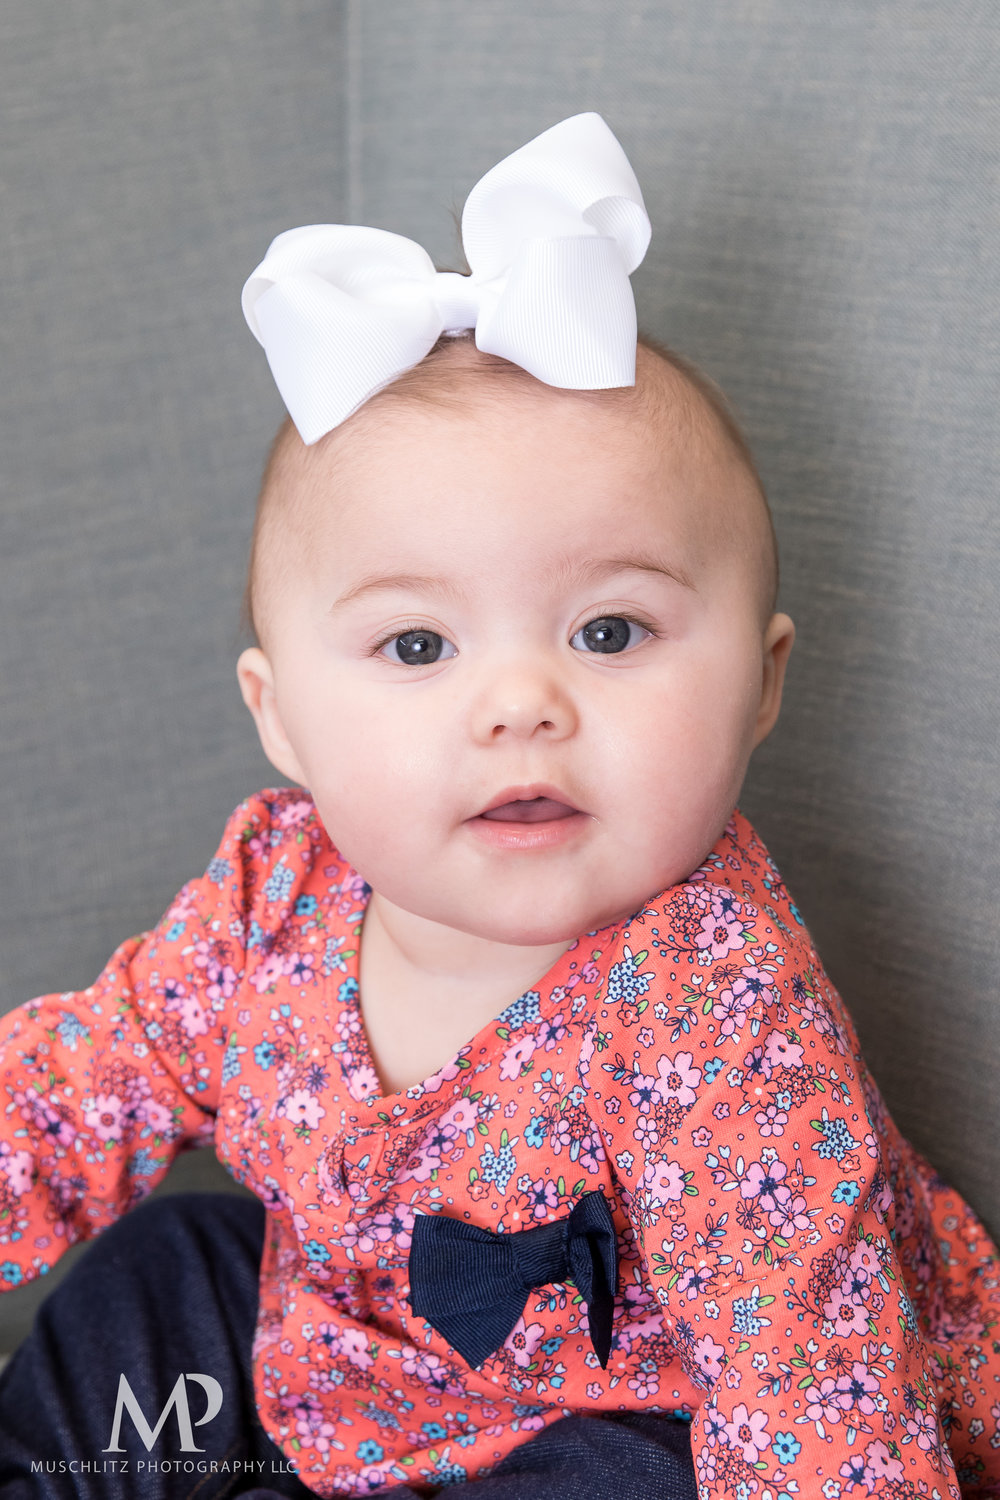 6-month-portraits-baby-photographer-columbus-ohio-gahanna-muschlitz-photography-010.JPG